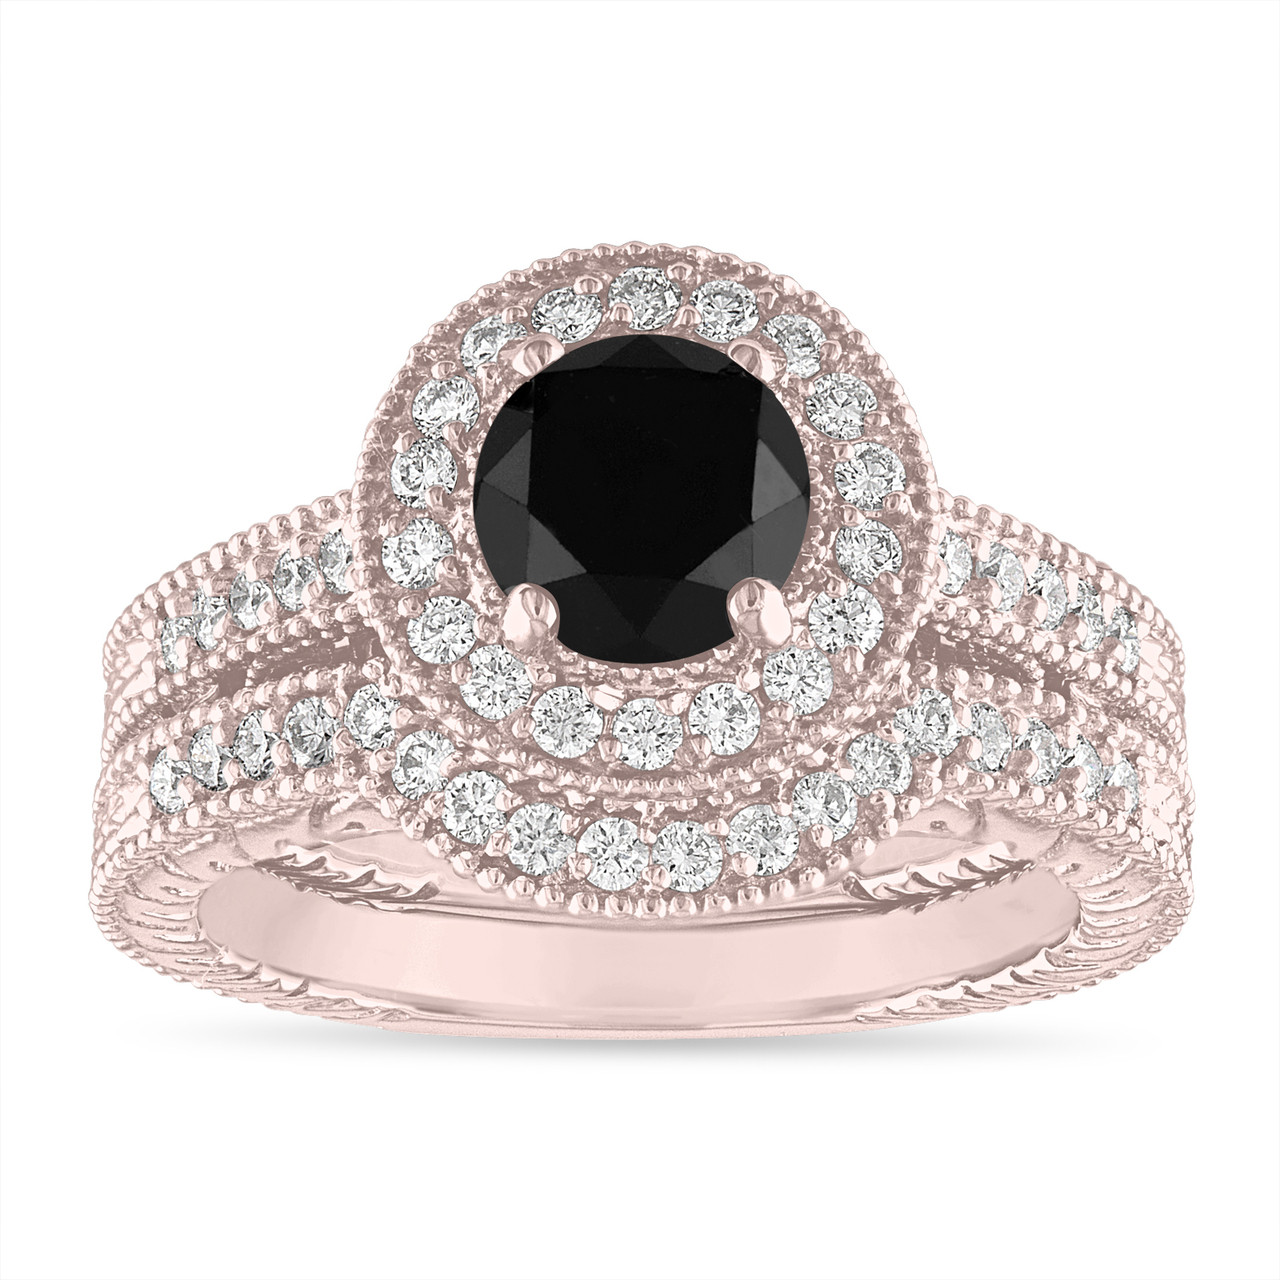 Black Diamond Engagement Ring Set Wedding Rings Sets 14k Rose Gold Halo Pave Vintage Style Certified Handmade Unique